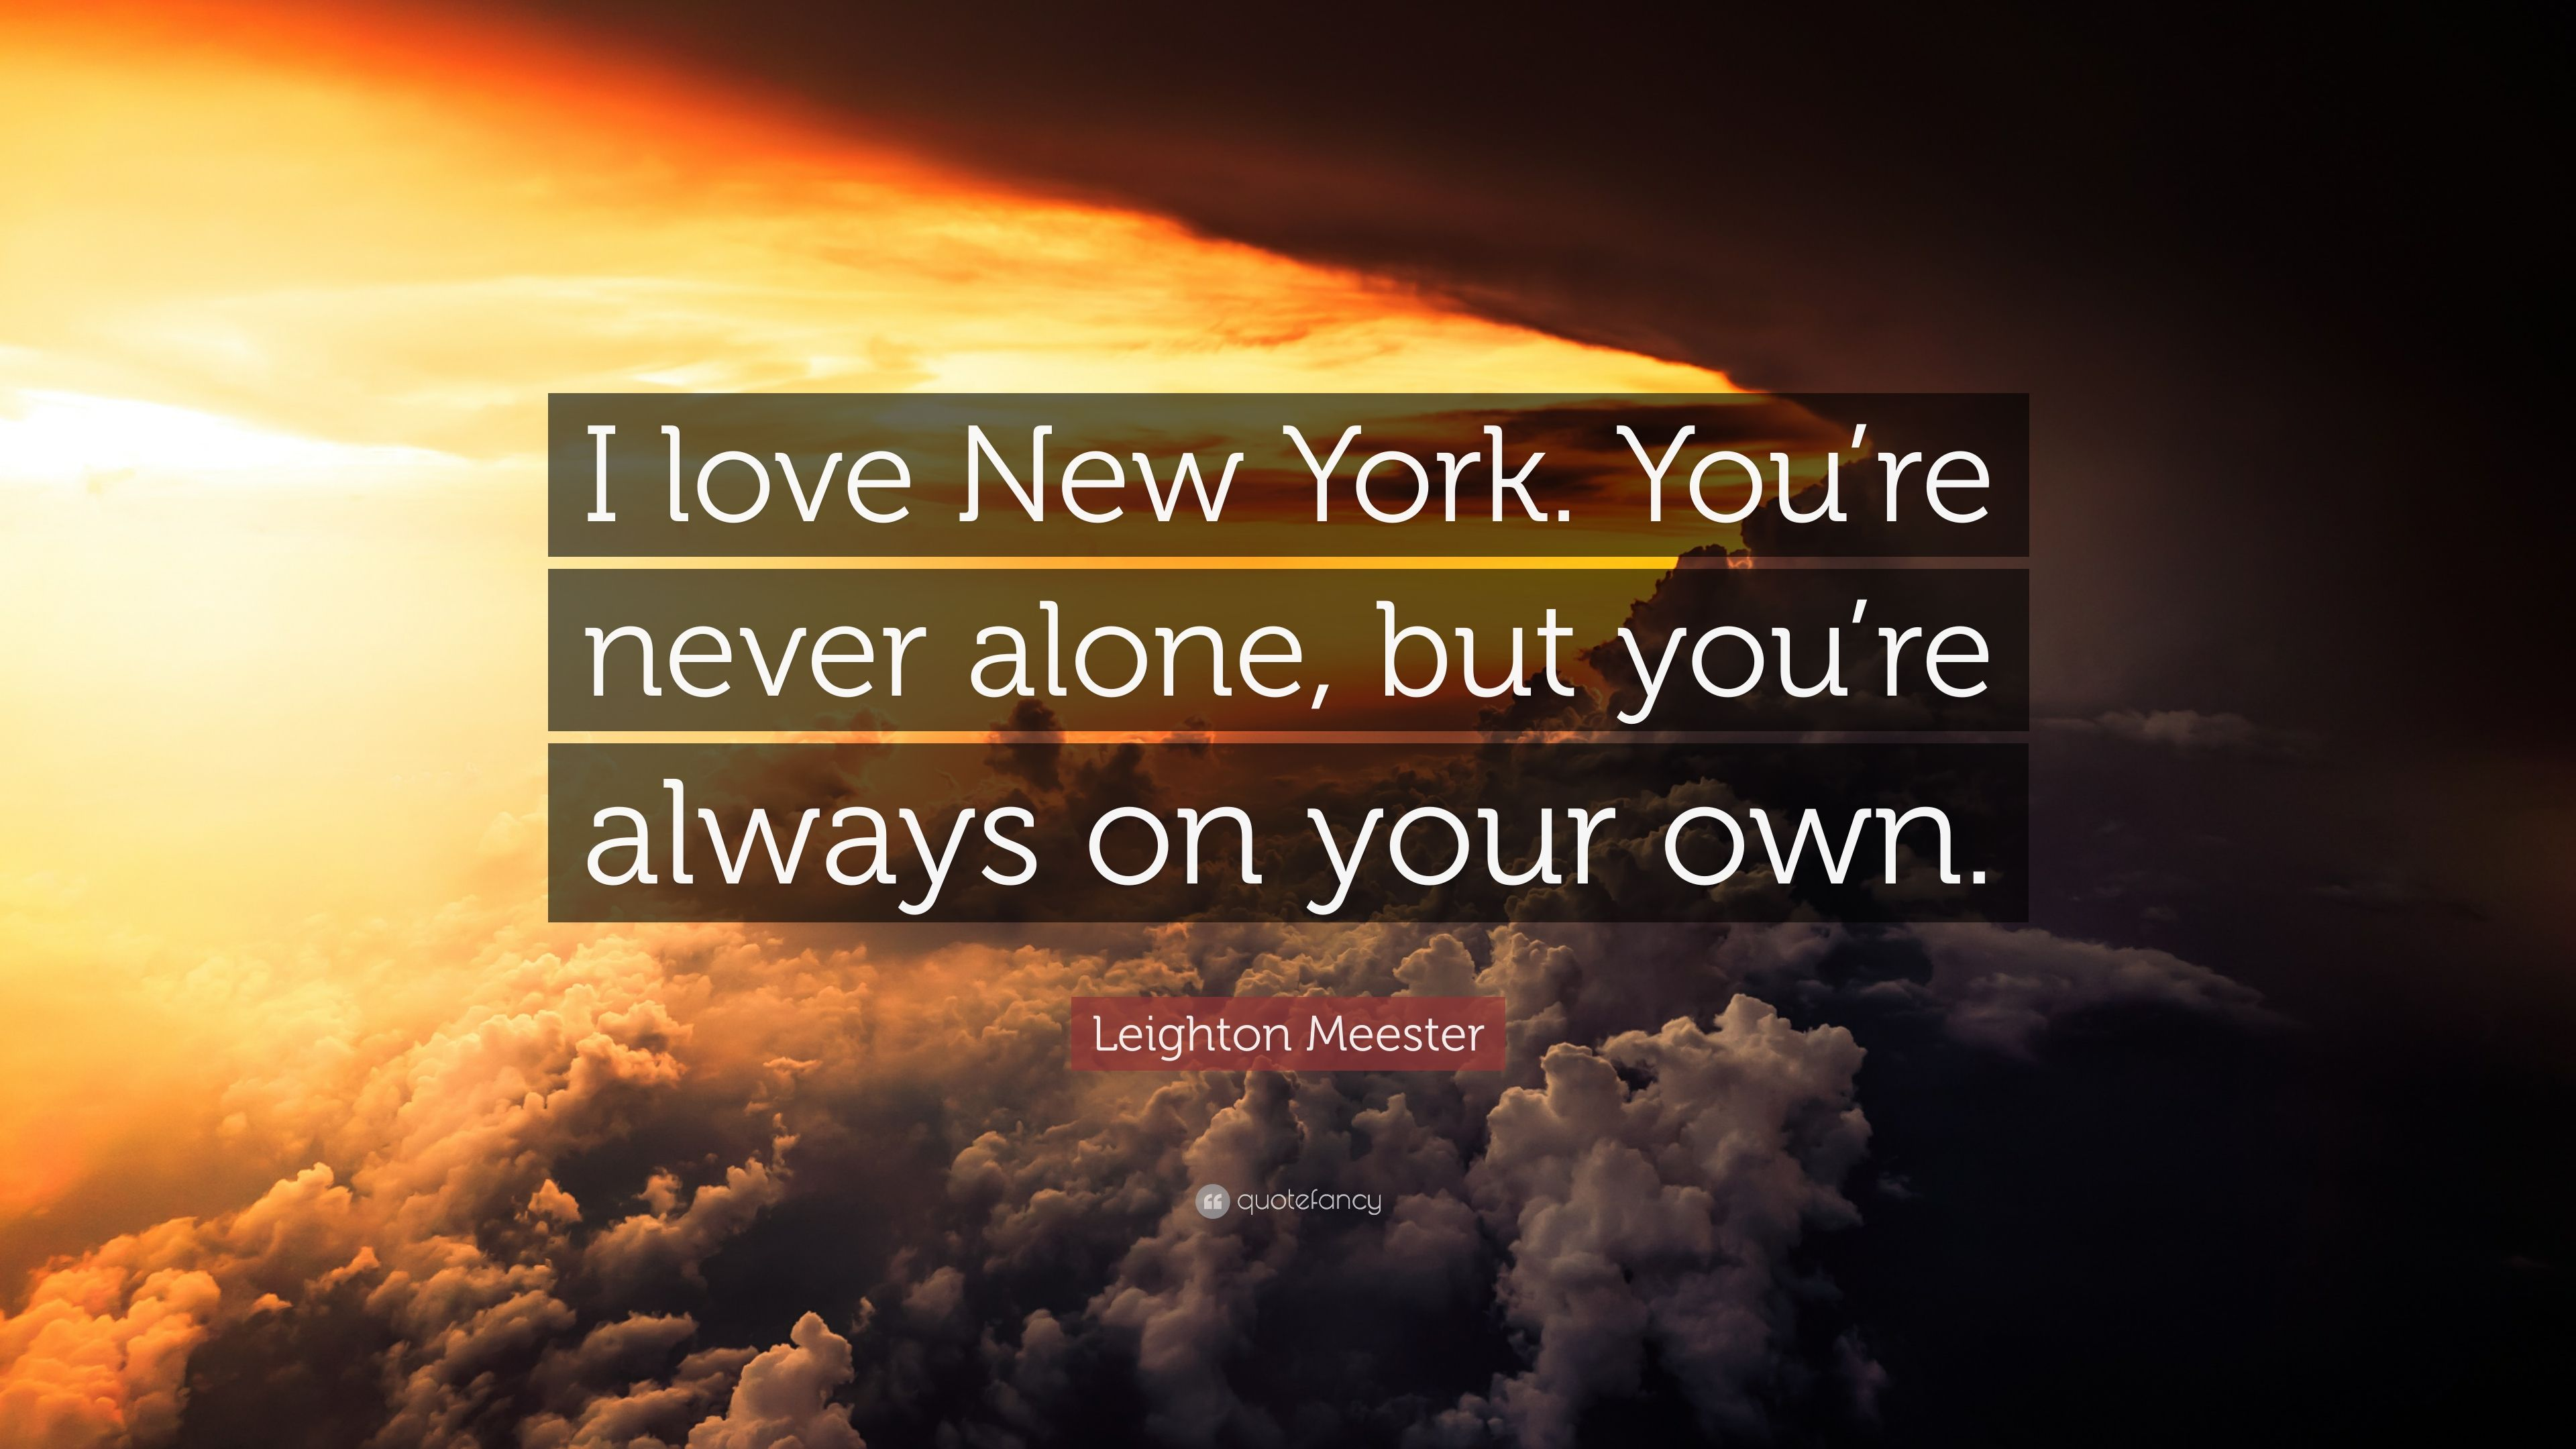 Leighton Meester Quote I Love New York Youre Never Alone But